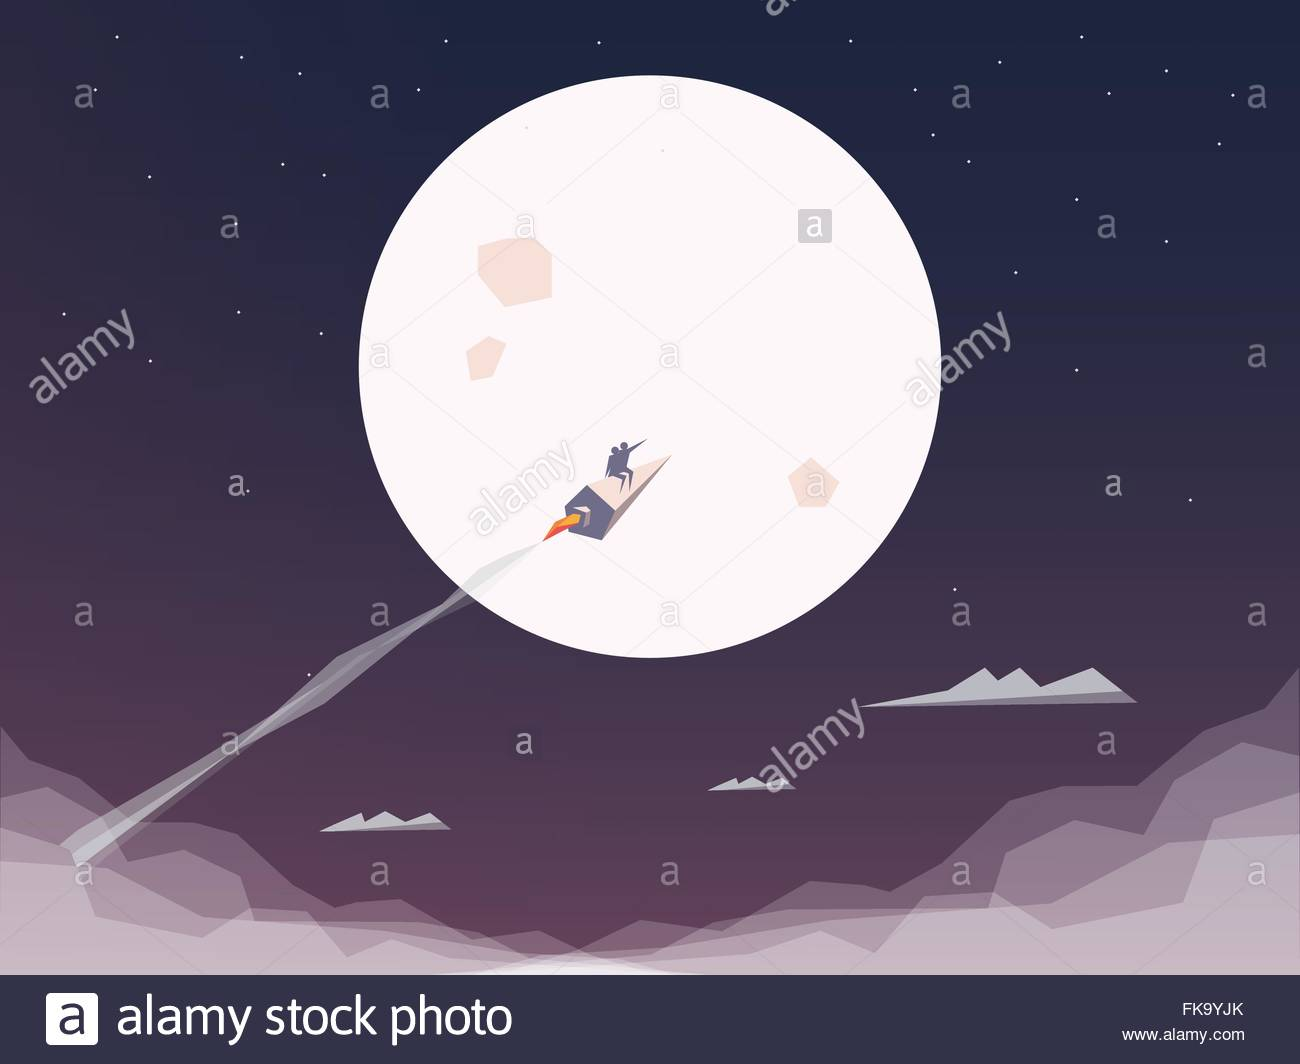 Space rocket flying to the moon. Startup business symbol. Technology innovation background or wallpaper.